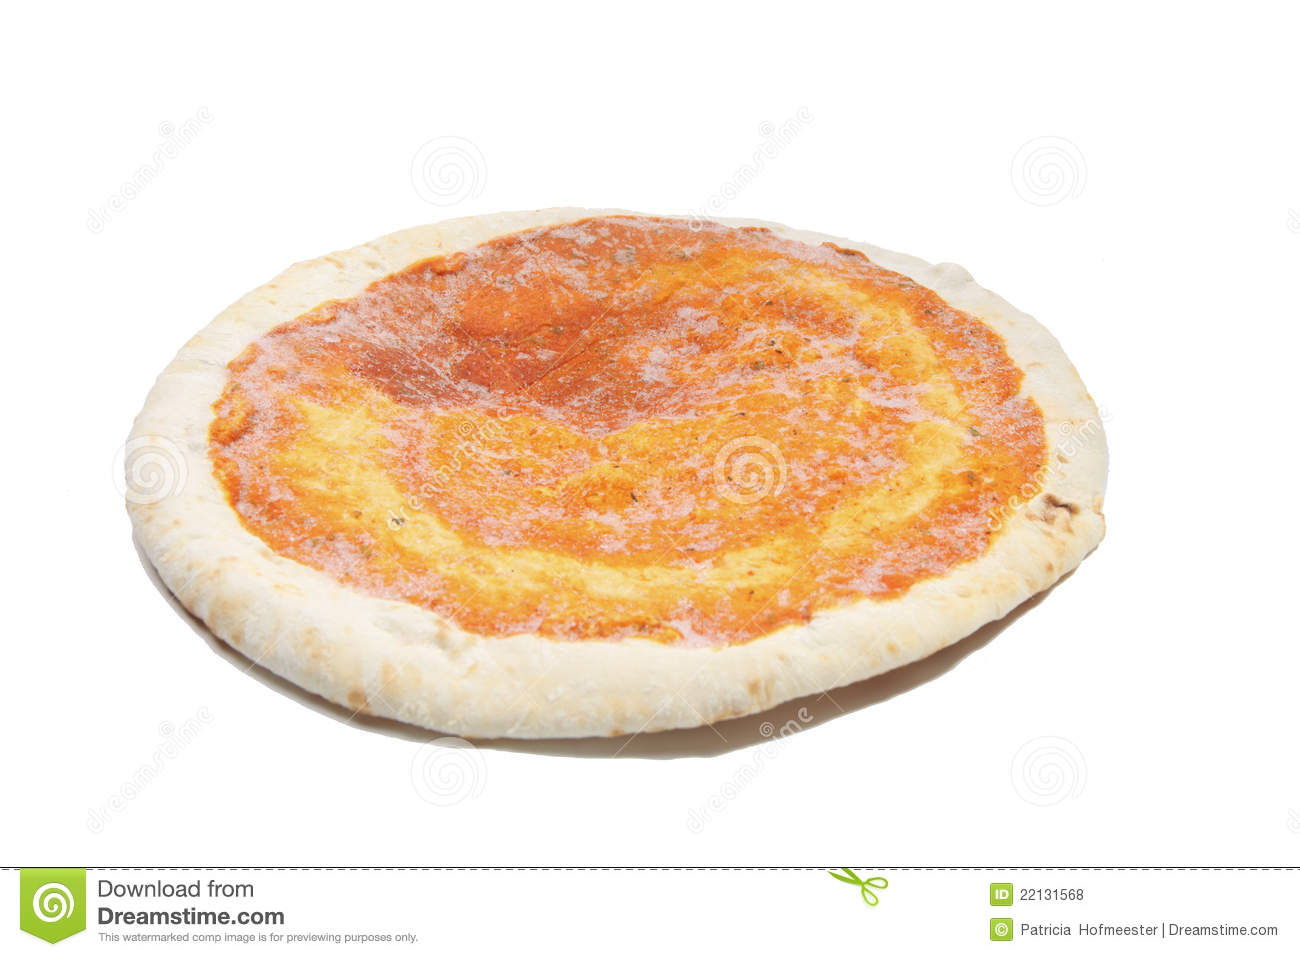 frozen pizza business plan Most college students would deem a pizza vending machine too good to be true however, technology has graced the world with a vending machine that cooks you a fresh, not frozen, custom pizza in less than 3 minutes.